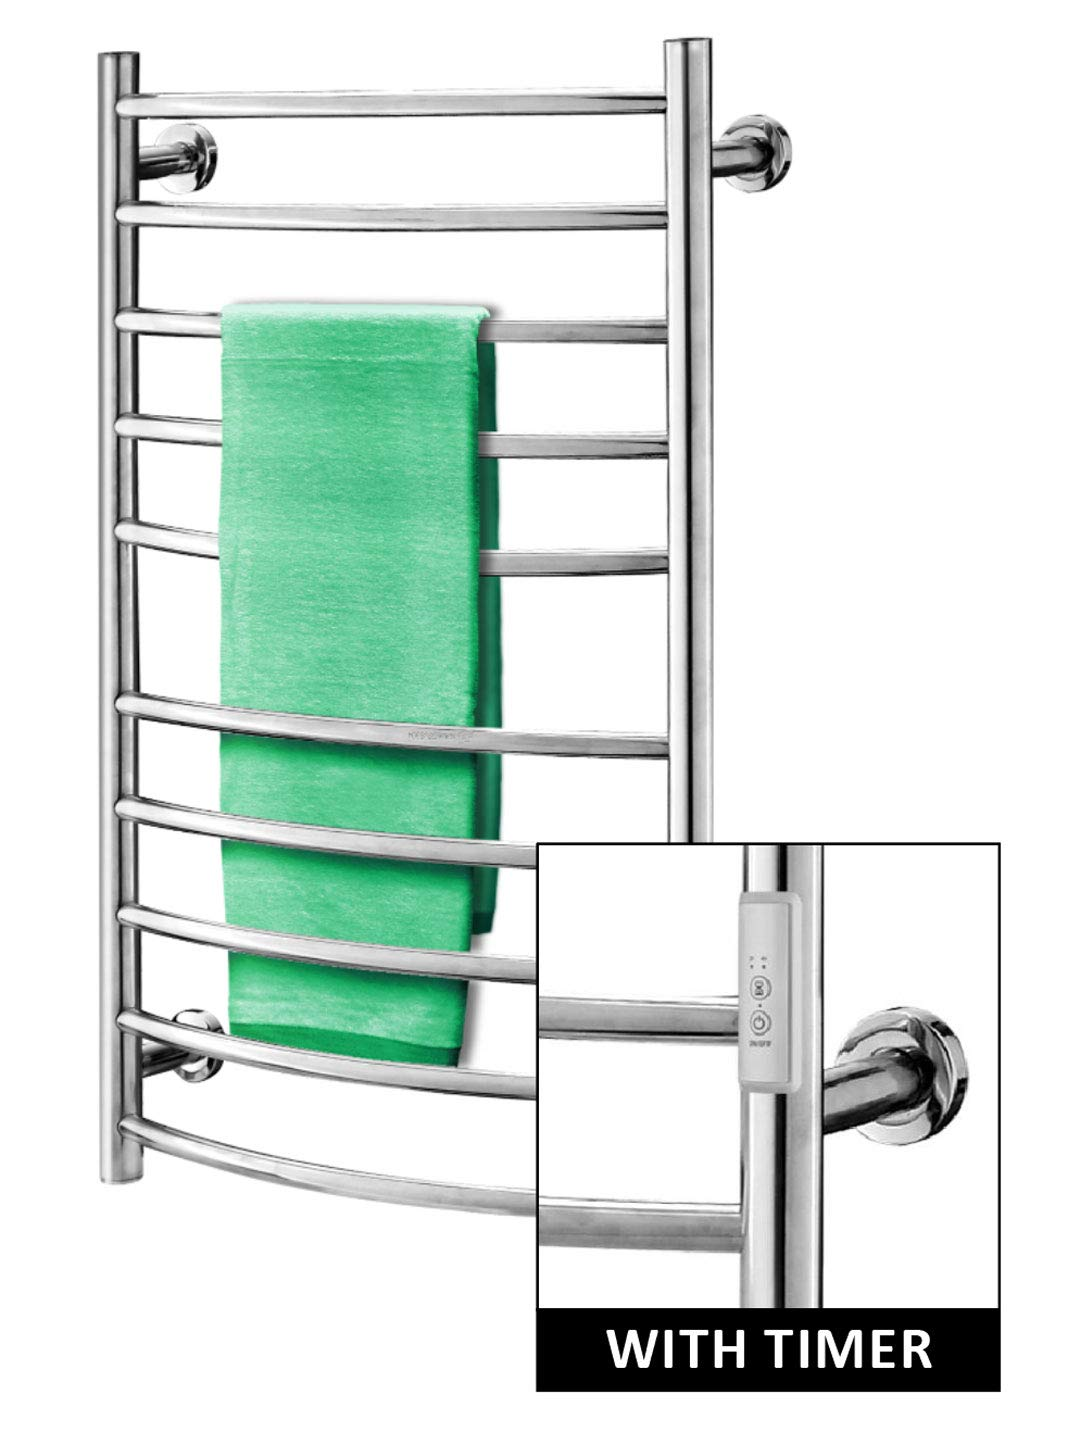 Towel Warmer   Built-in Timer with Led Indicators   3 Timer Modes: ON/Off, 2 H, 4 H   Both Hard-Wired & Plug-in Options Included  Wall Mounted   10 Curved Bars   High Polish Chrome Stainless Steel